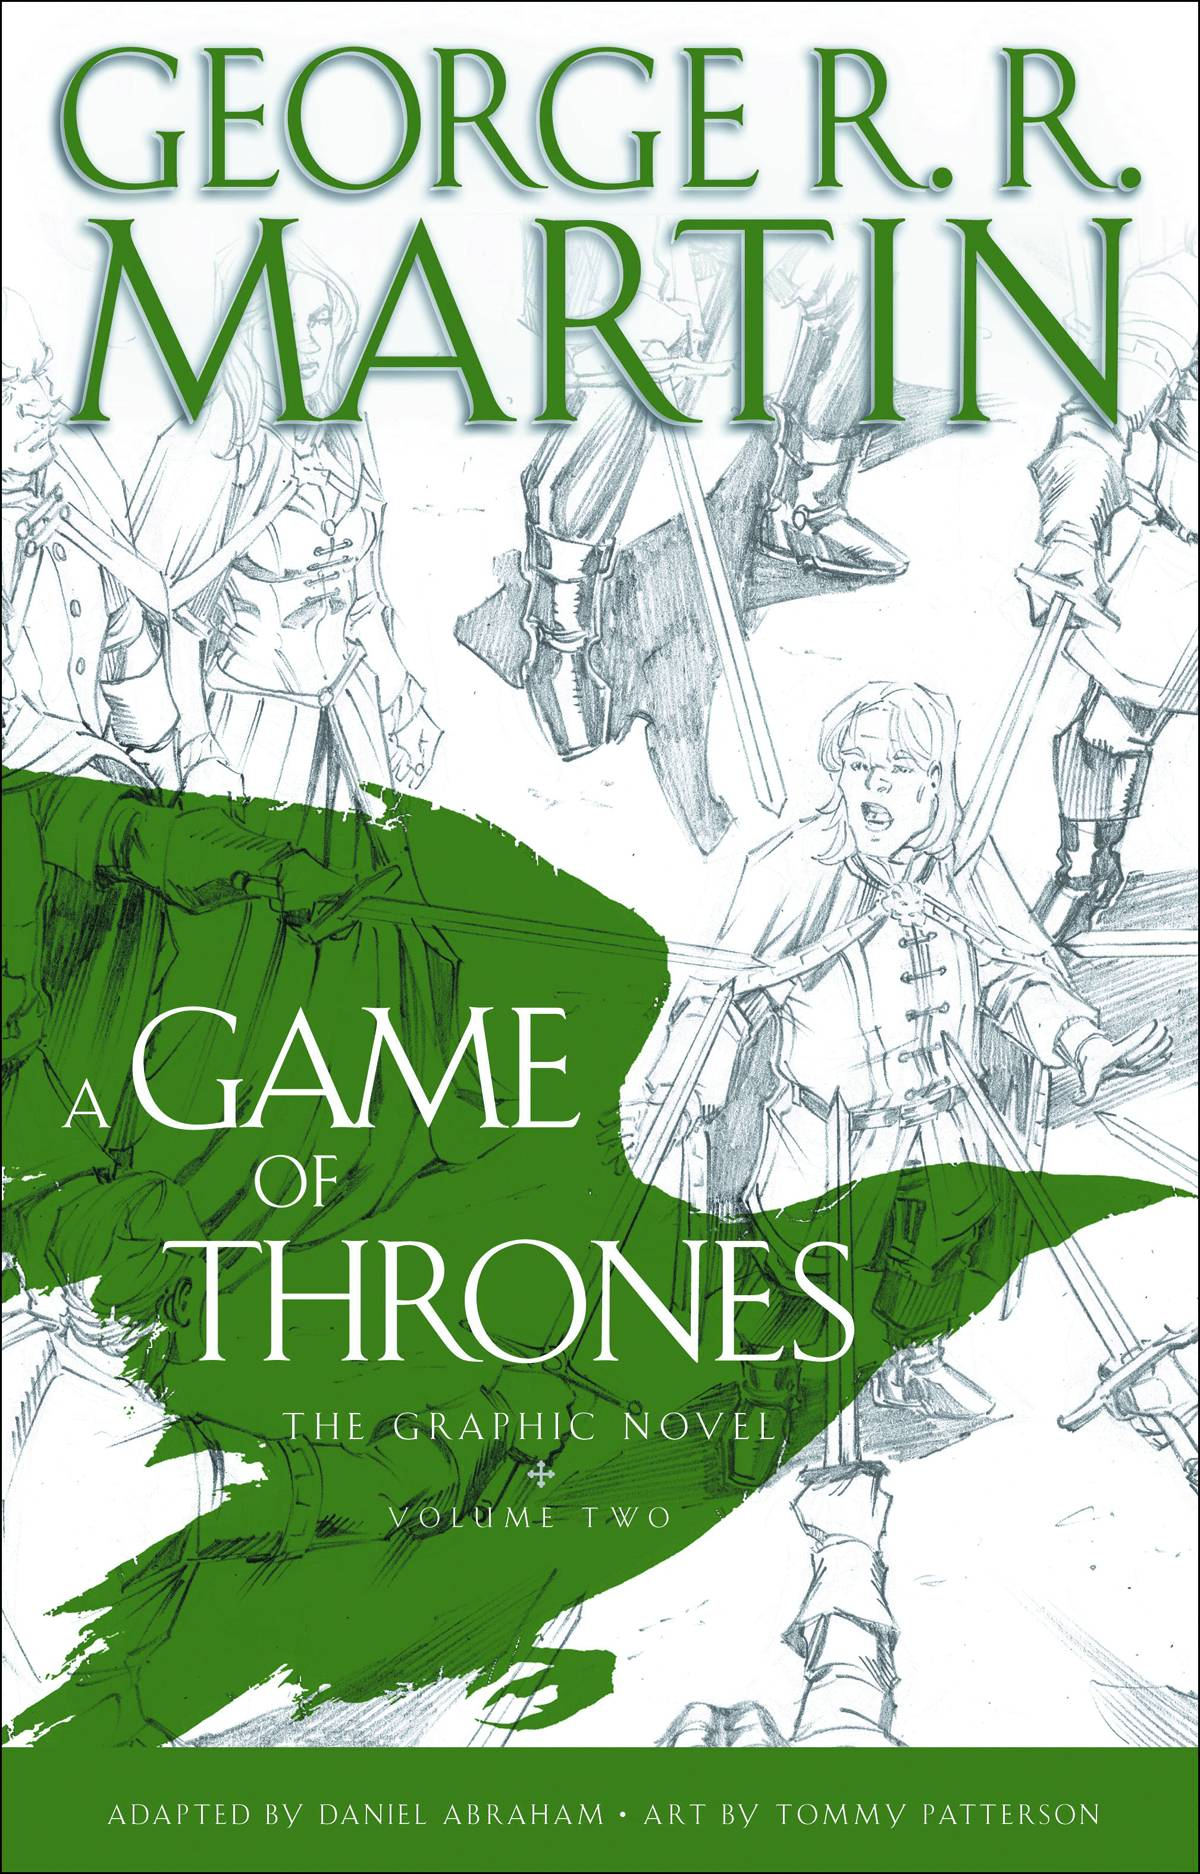 A Game of Thrones Vol 2 Hardcover